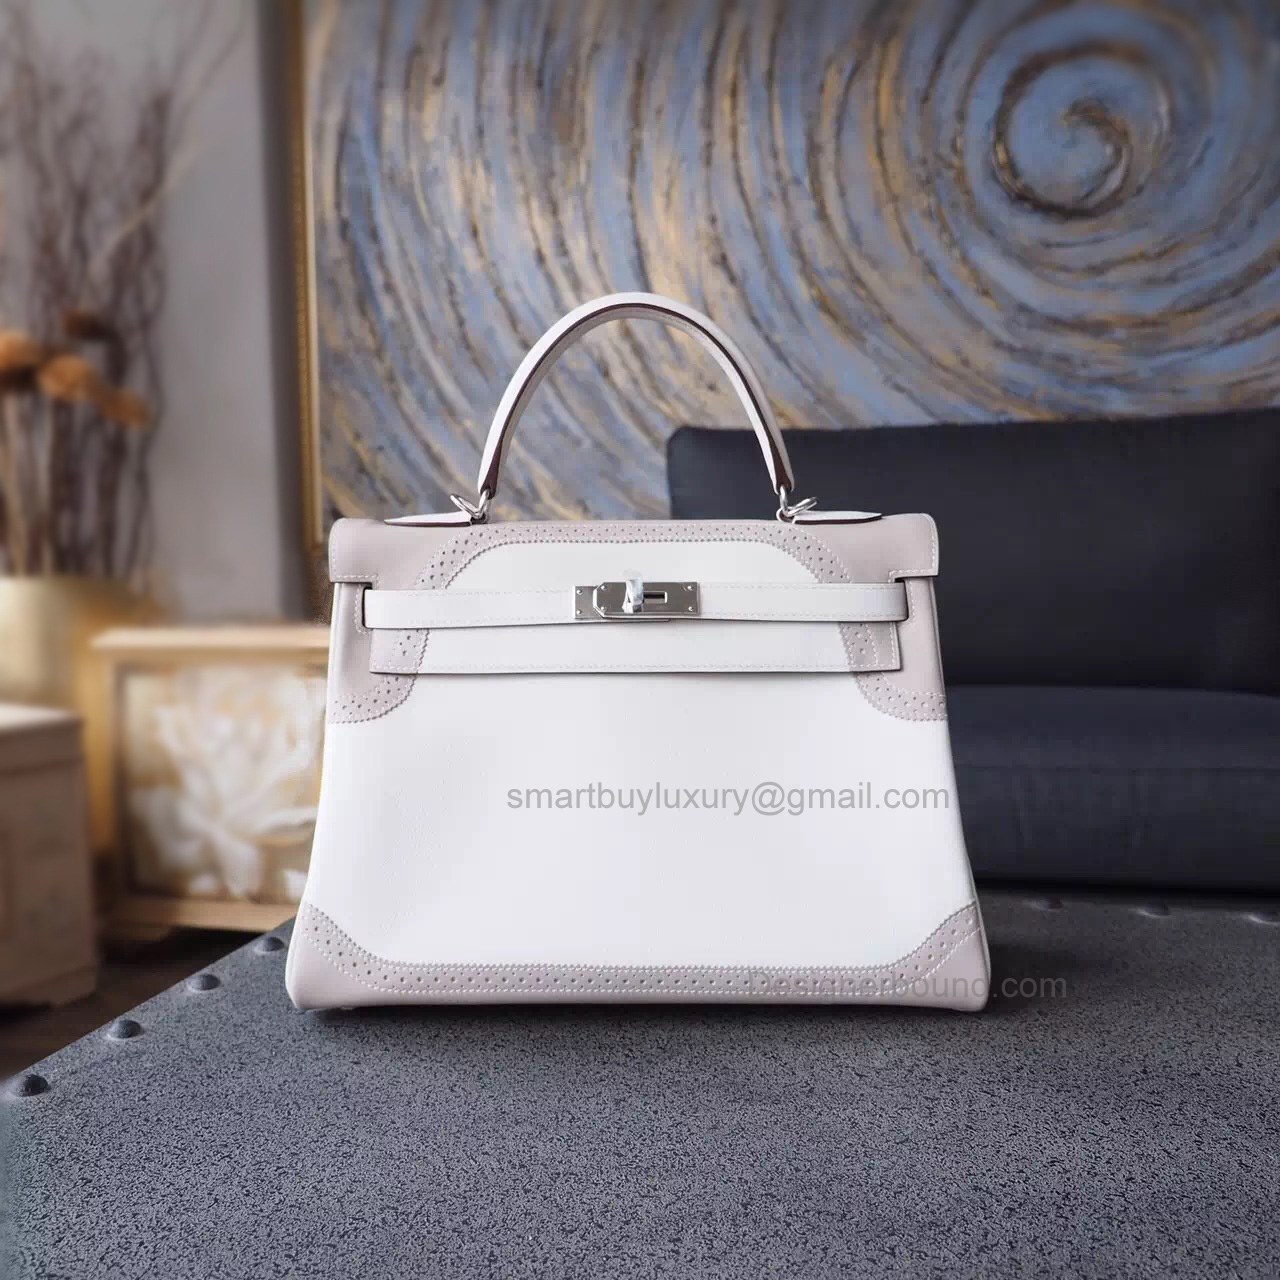 Hermes Kelly 32 Ghillies Copy Bag in Bicolored cc01 Blanc Swift Calfskin PHW